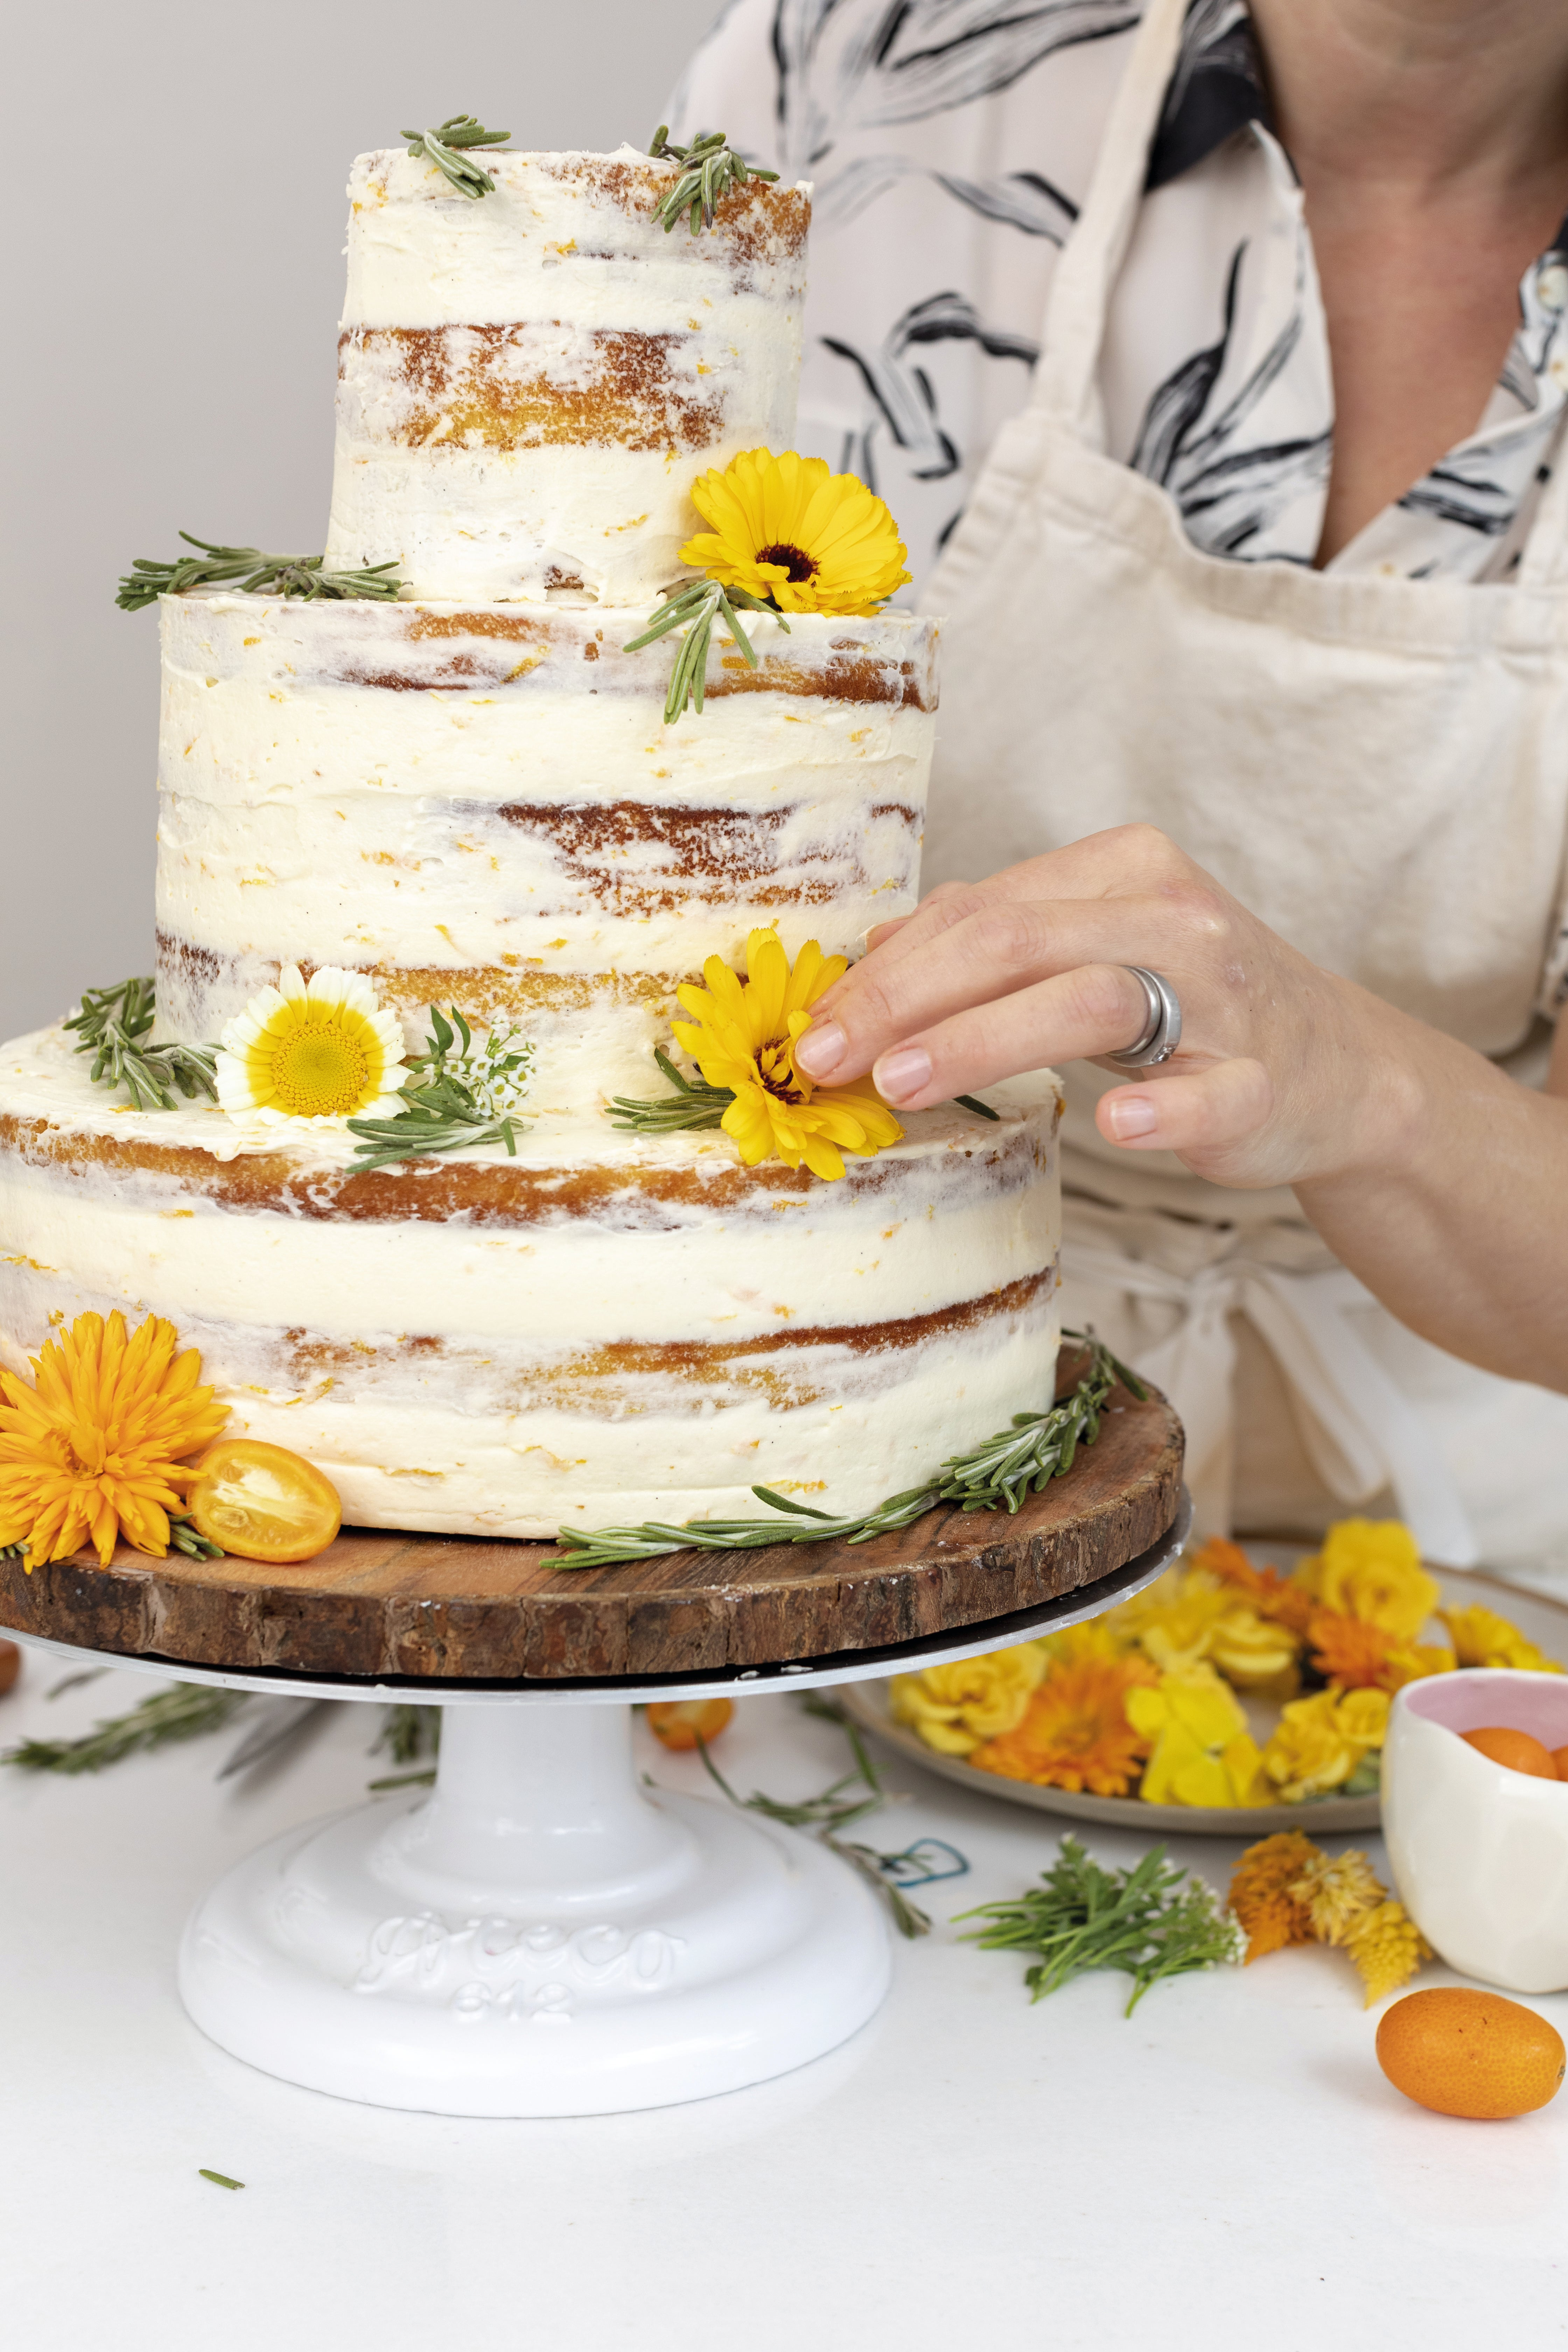 7-Orange-Almond-Touch-of-Frosting-Cake.jpg